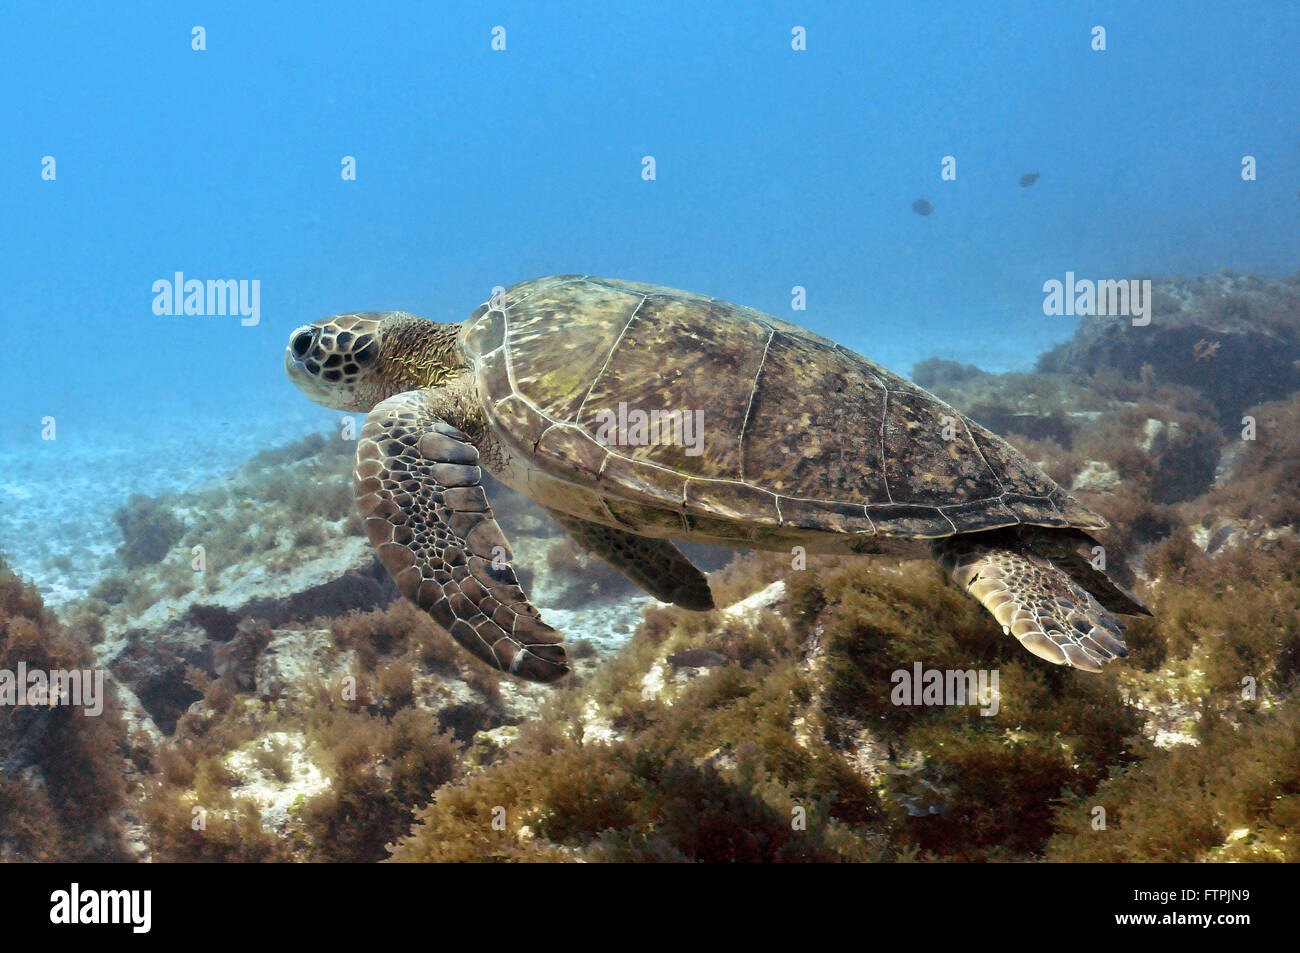 Underwater pictures on the Brazilian coast - green turtle - Chelonia mydas - Stock Image